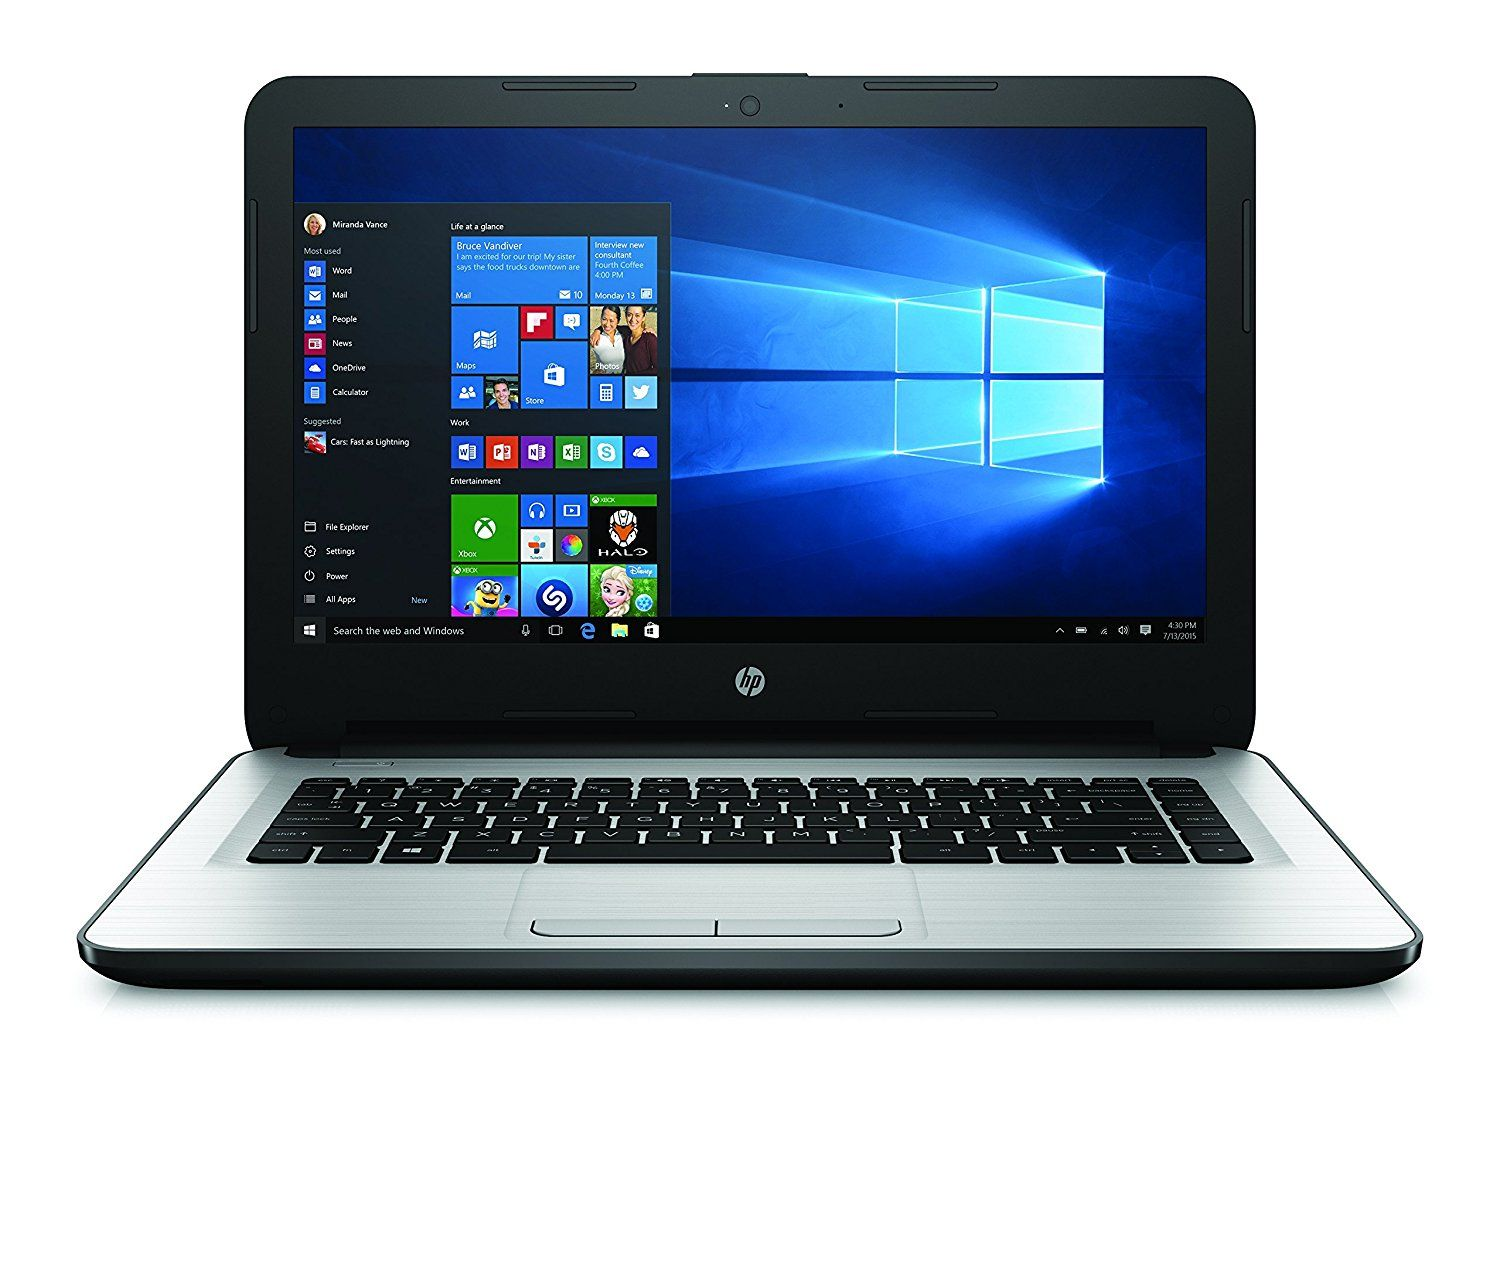 Vente Pc Portable Hp 14 Am009nf Pc Portable 14 Noir Pc Portable Pas Cher Amazon